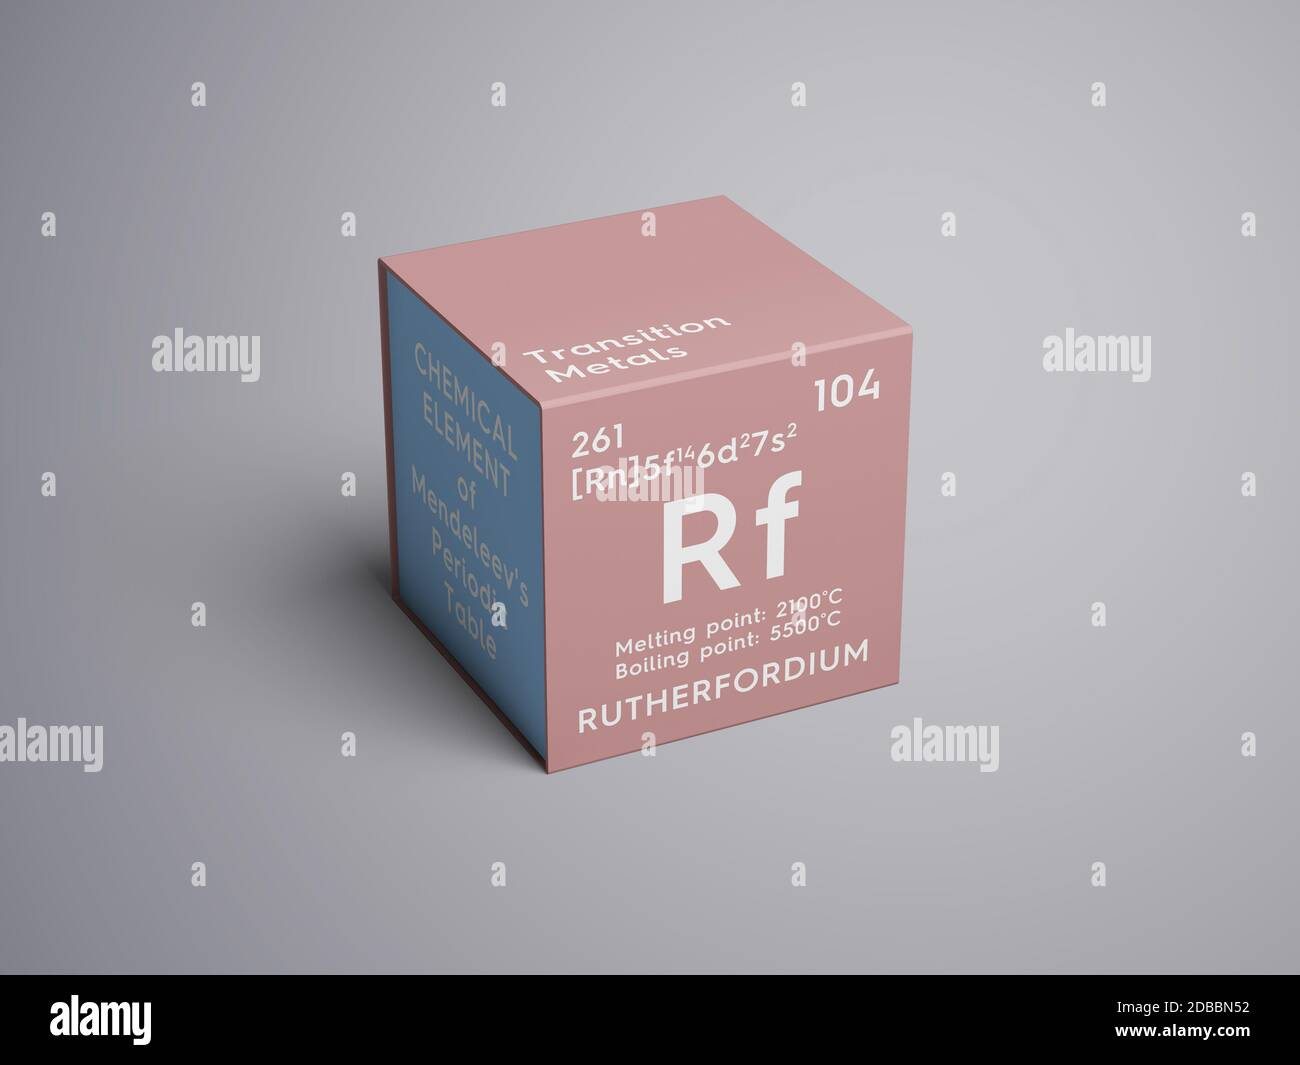 Rutherfordium. Transition metals. Chemical Element of Mendeleev's Periodic Table. Rutherfordium in square cube creative concept. 3D illustration. Stock Photo